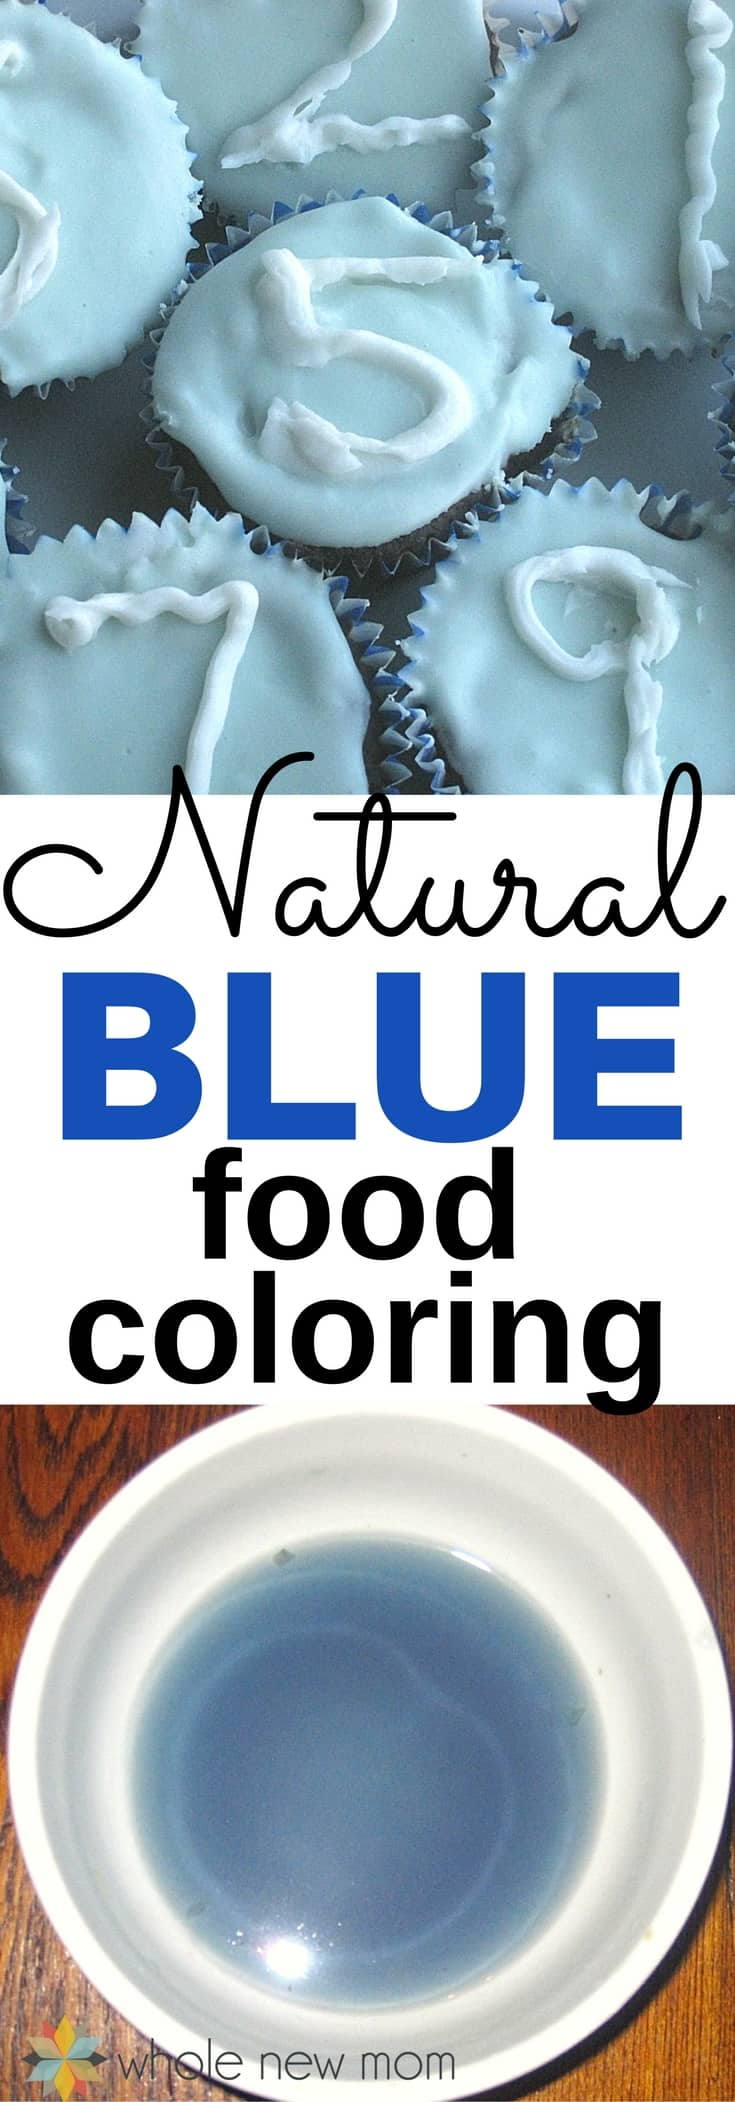 How to make Natural Blue Food Coloring. You'll be amazed at what food the blue color comes from!